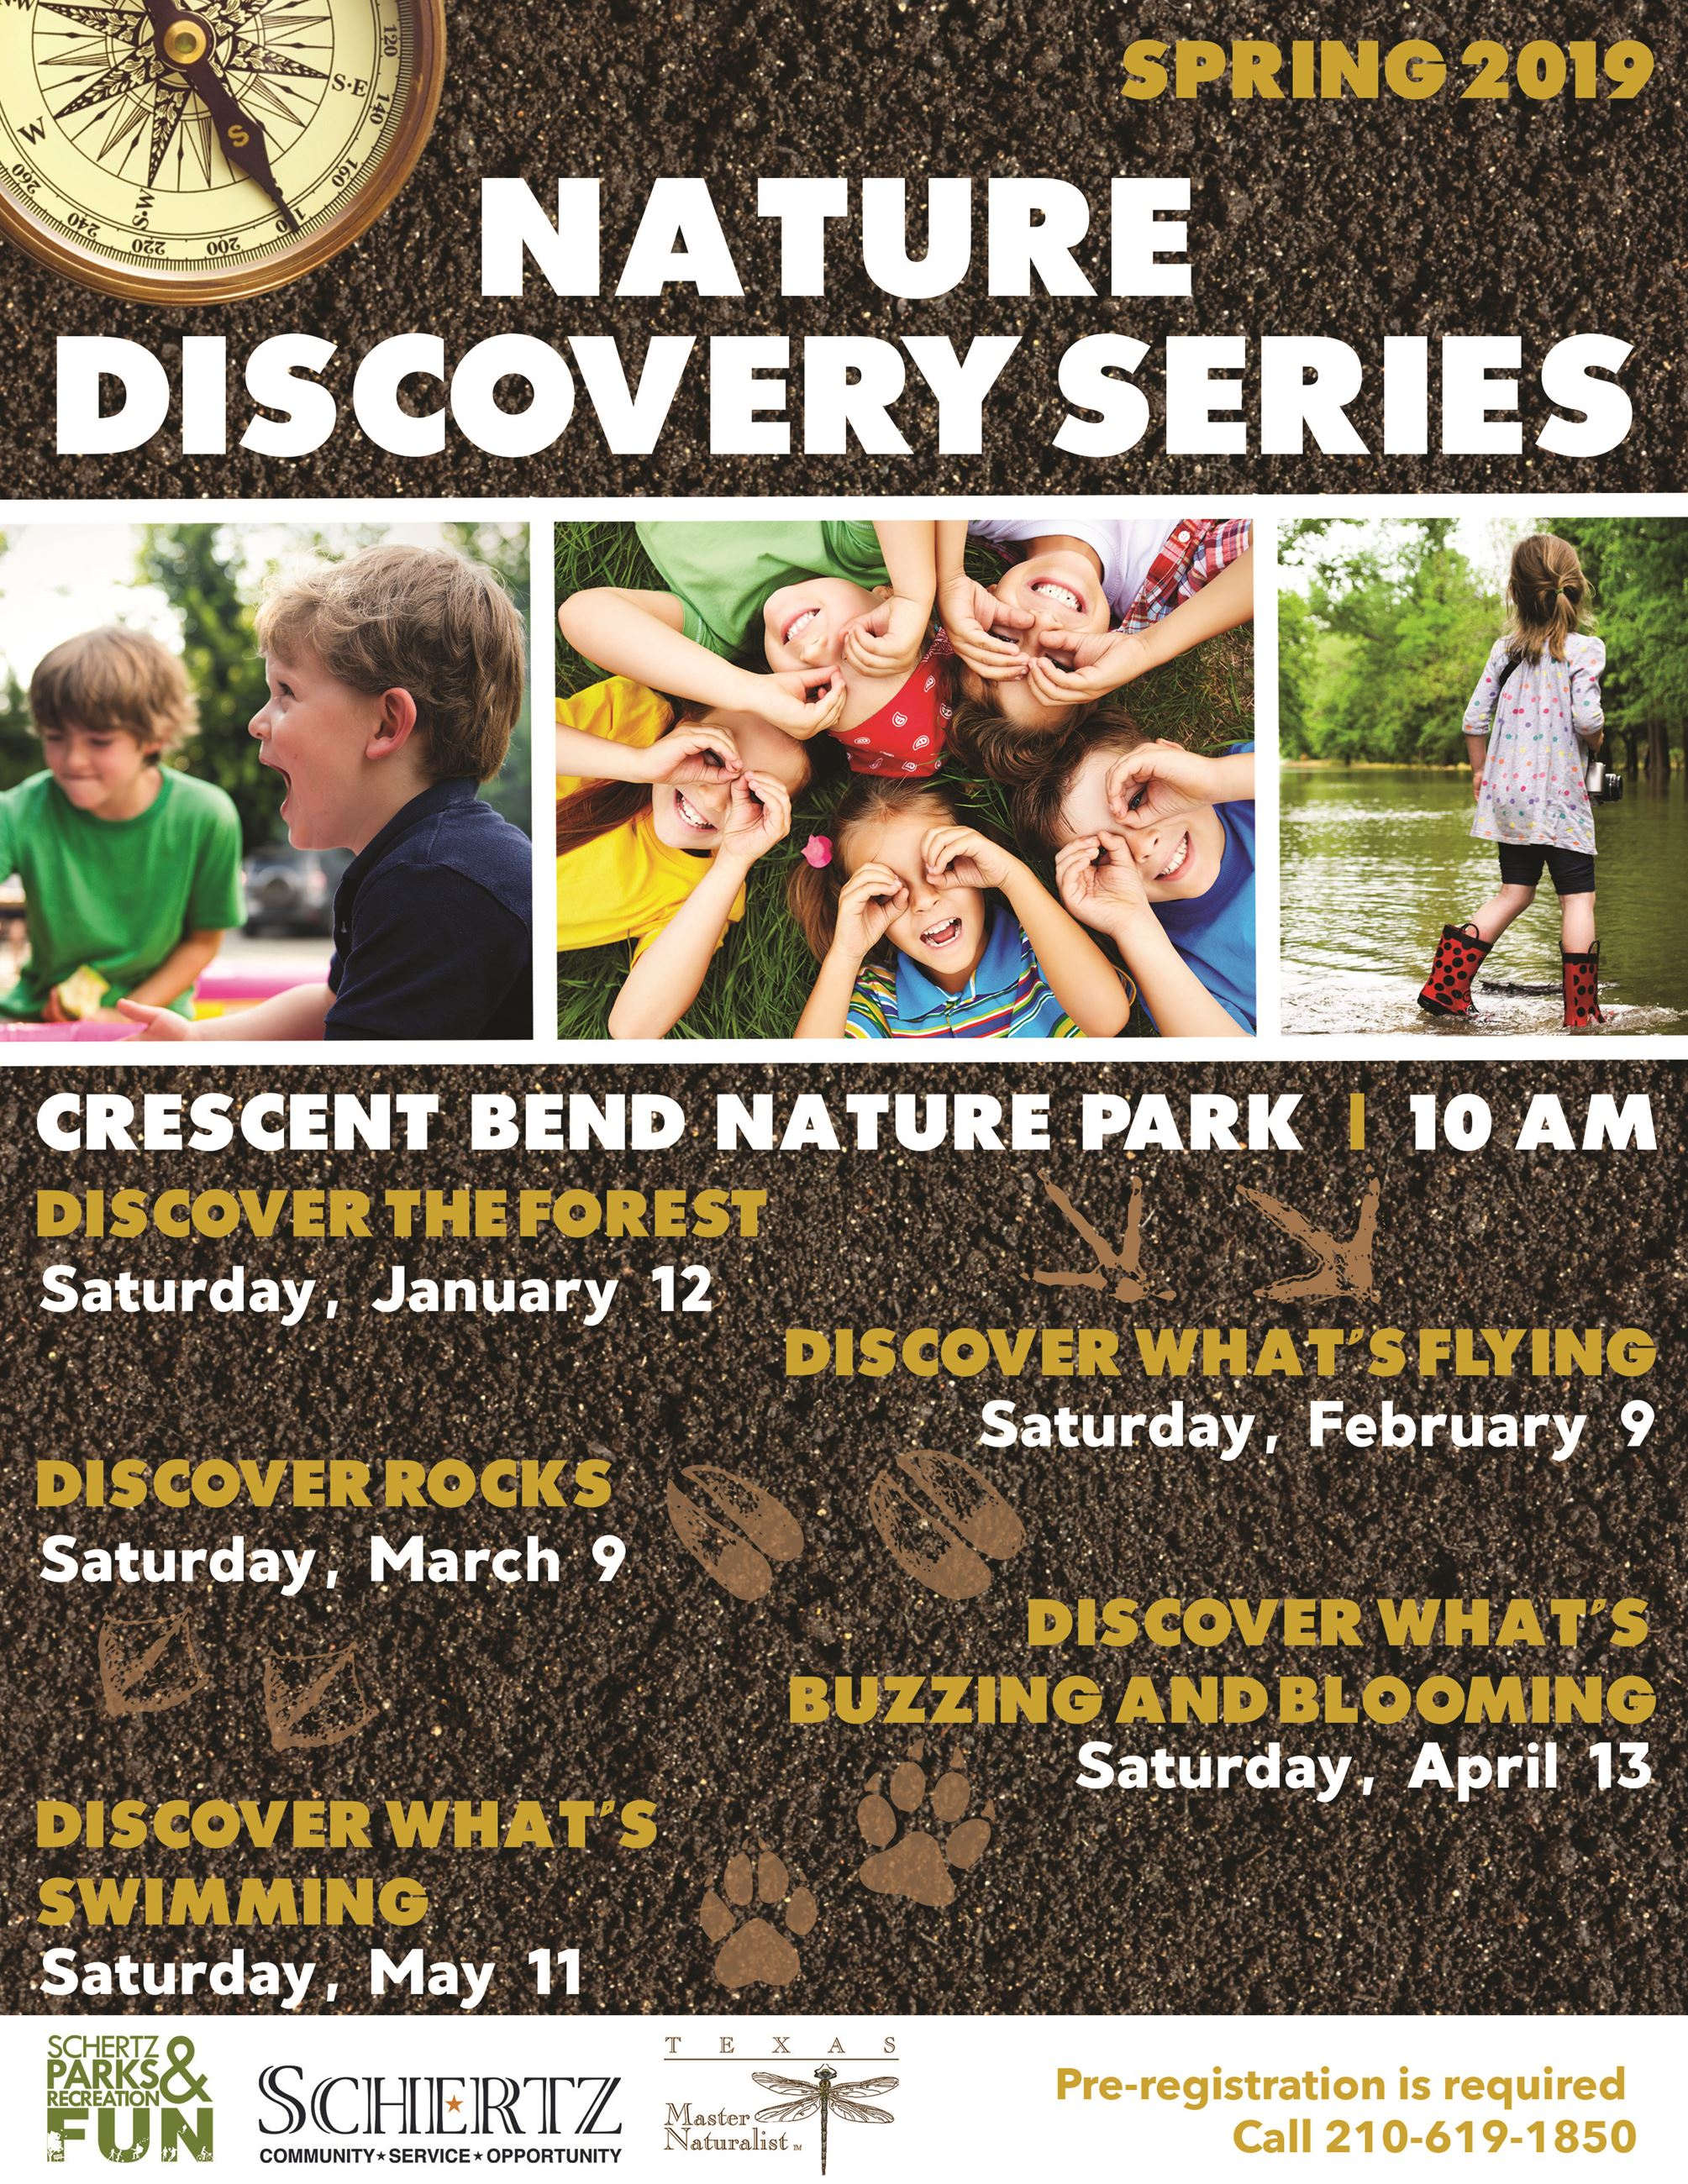 Nature Discovery Series Flyer Spring 2019